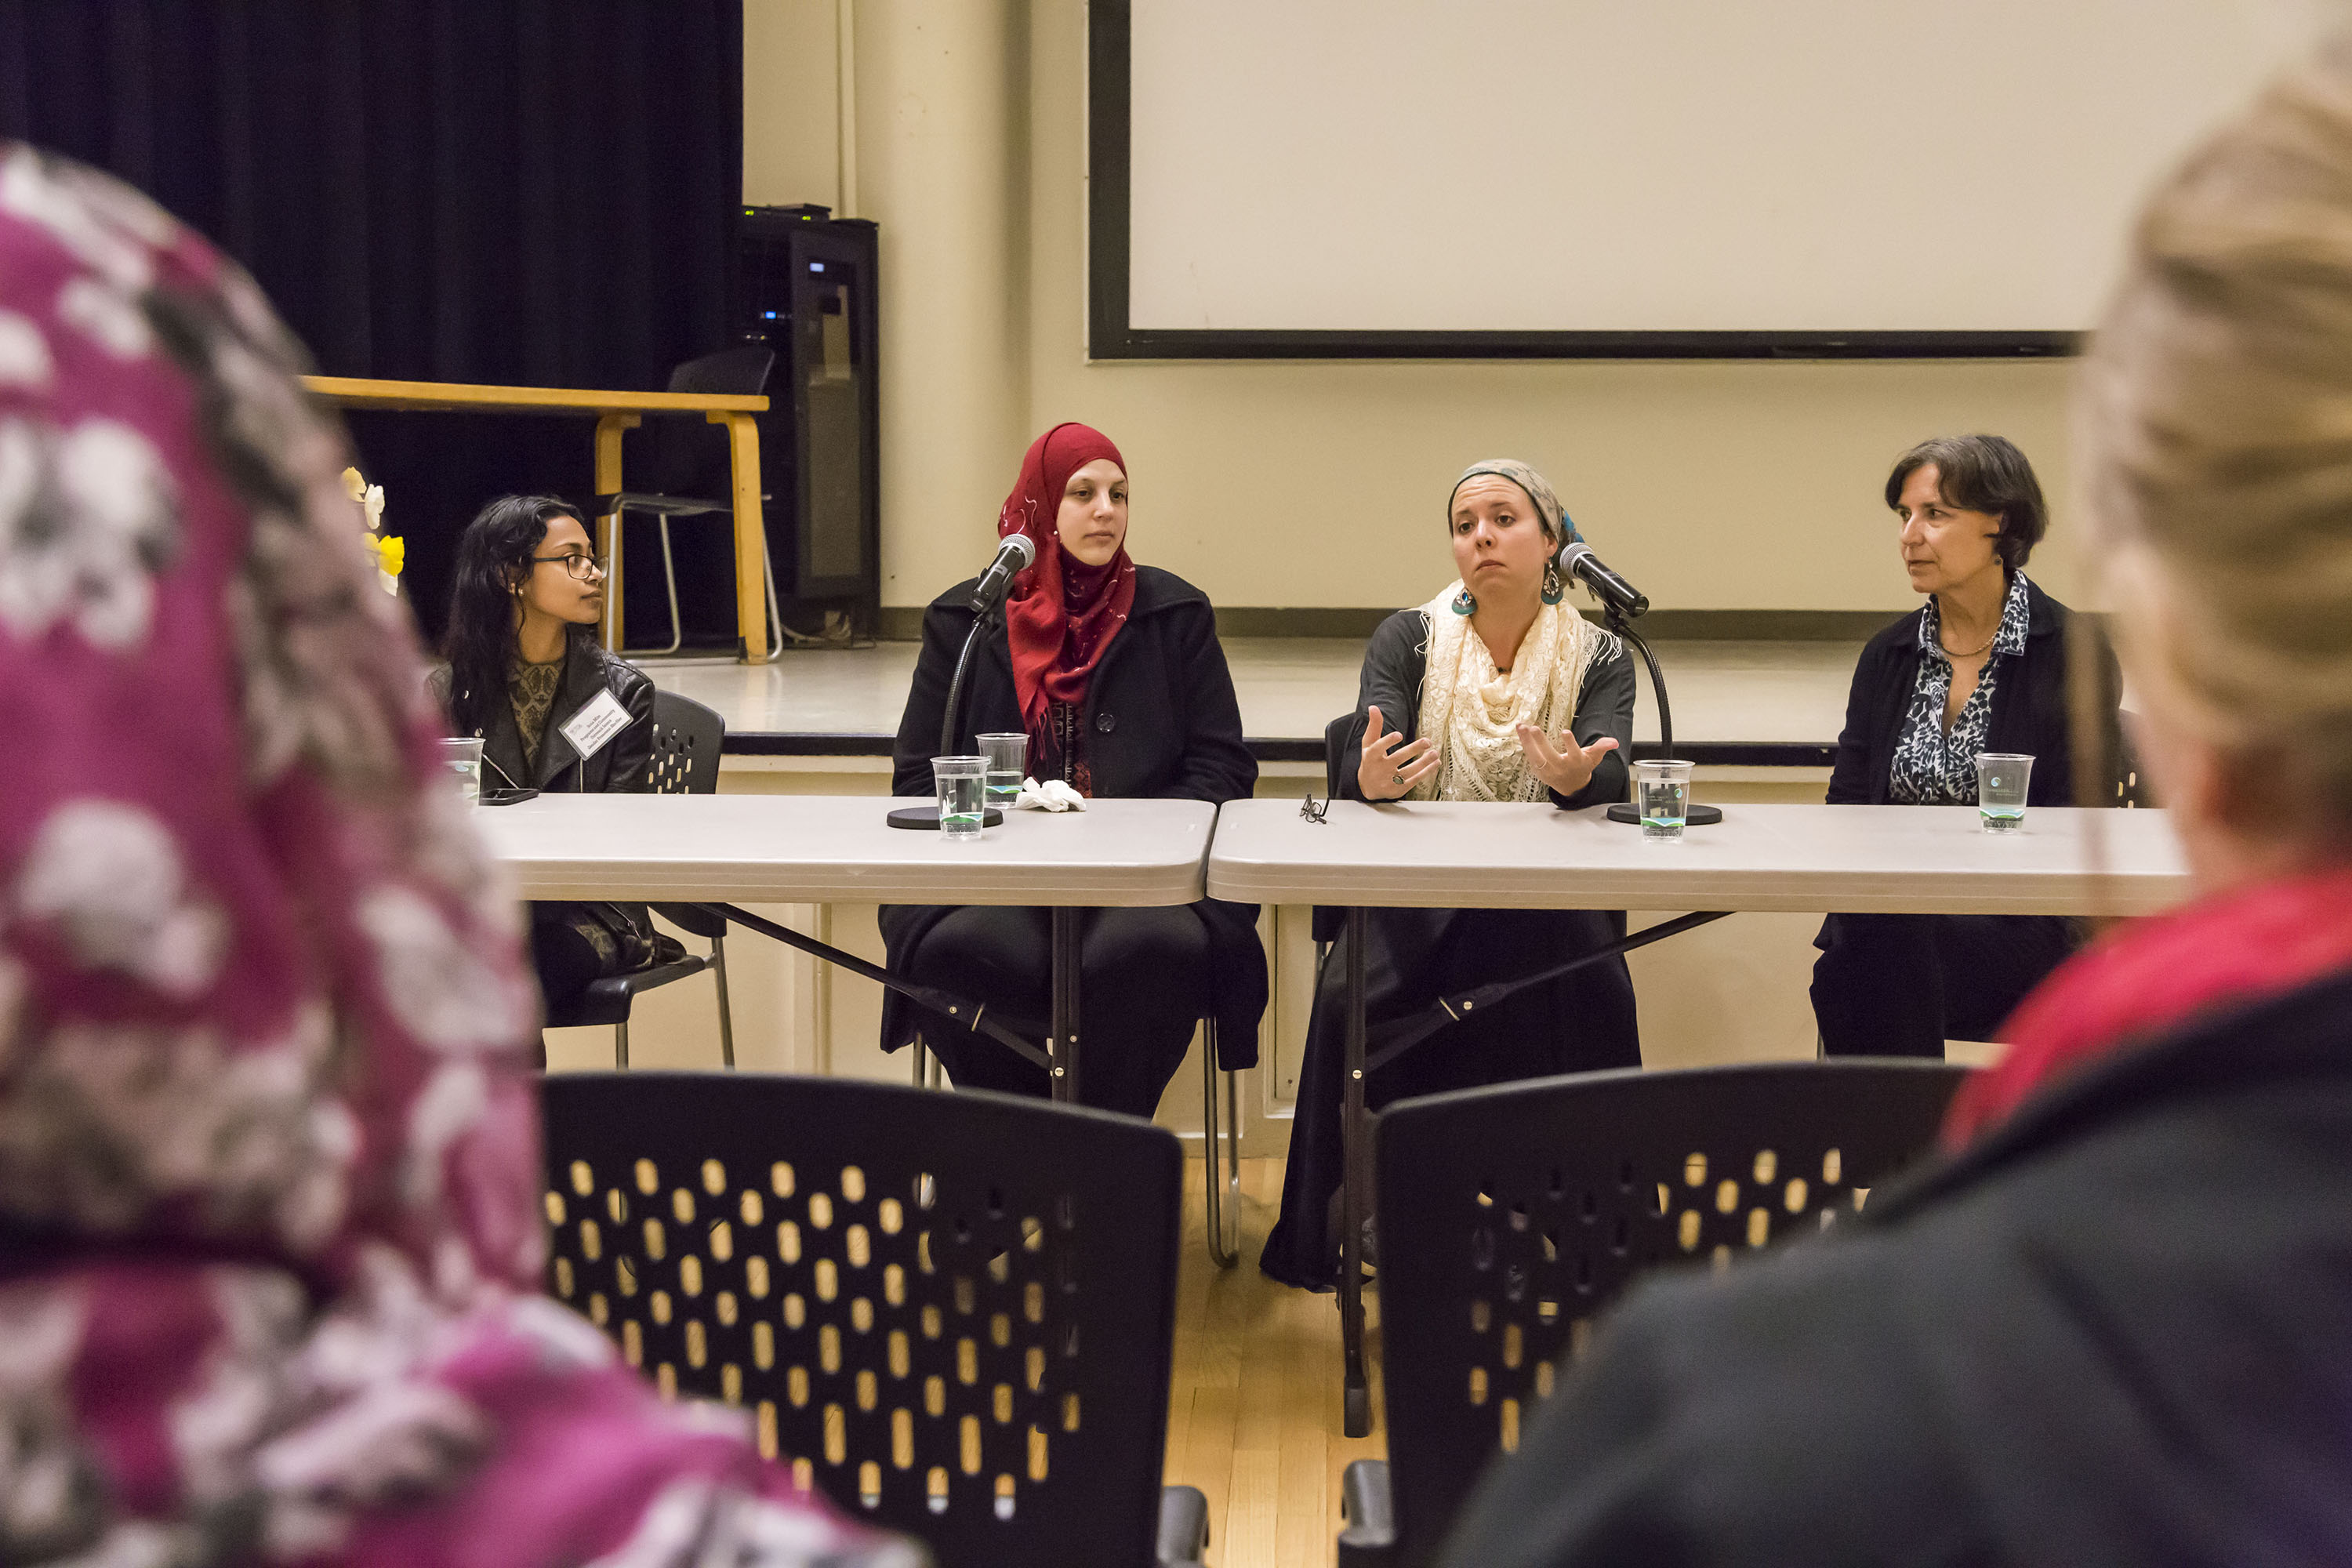 Lost Identities of the Hijab